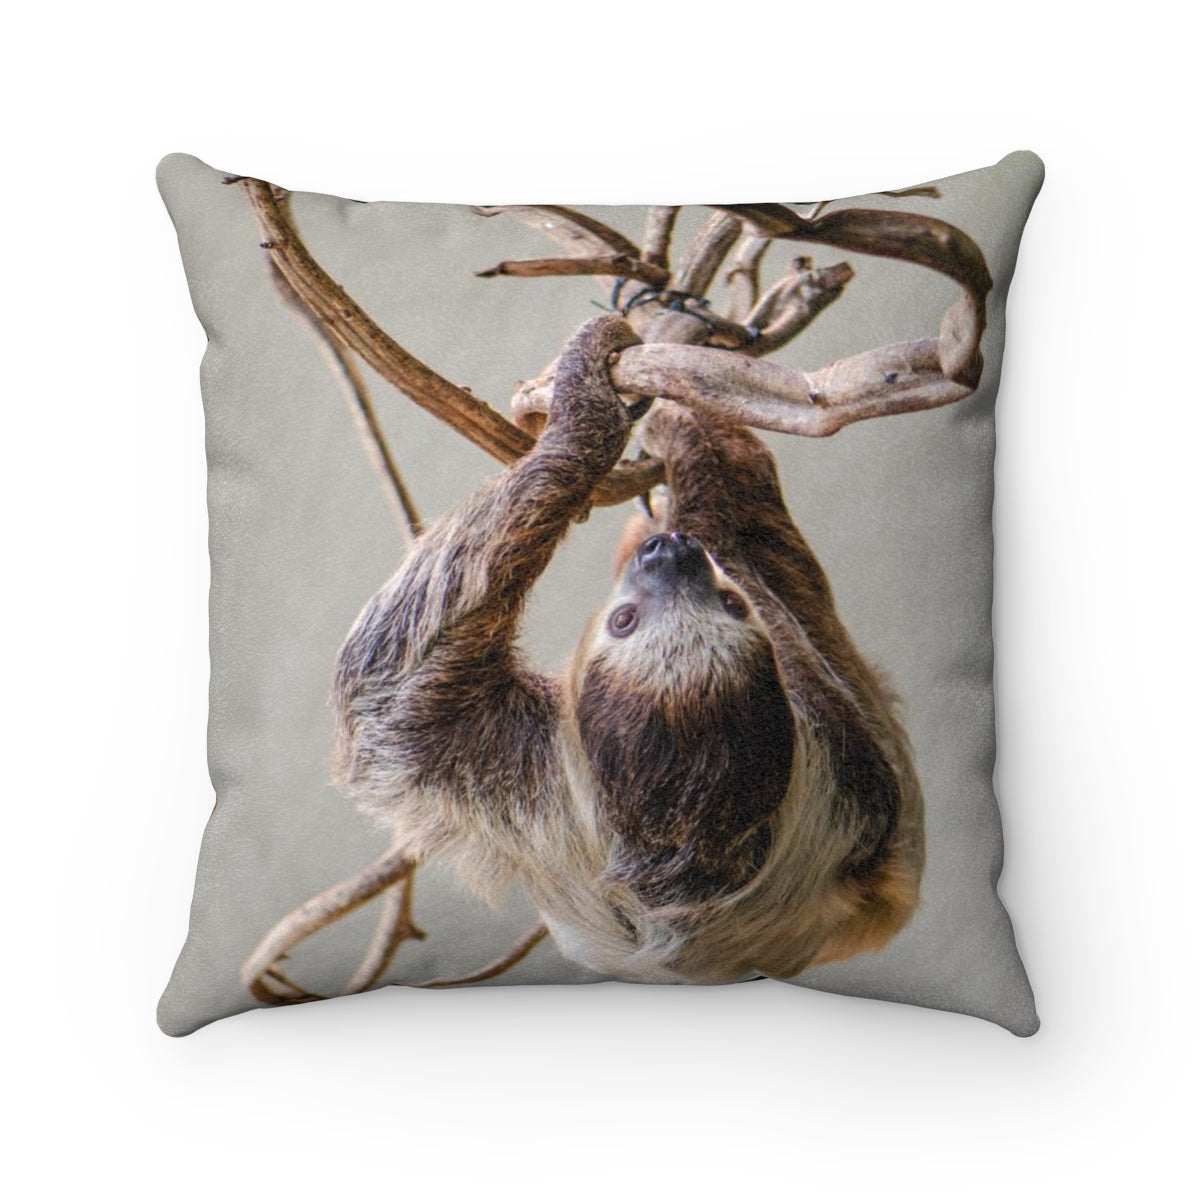 It's a Sloth Life Faux Suede Square Pillow